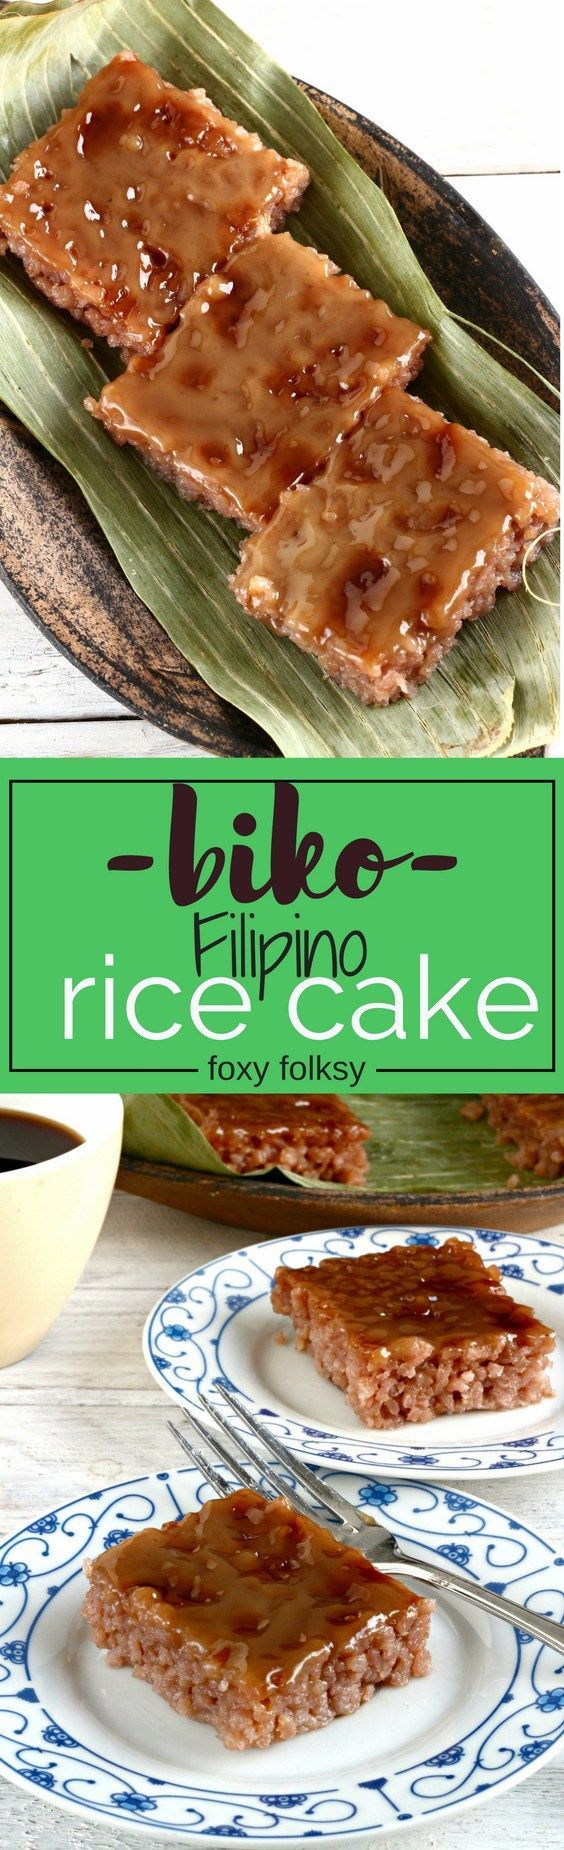 filipino rice cake 1109 best images about recipes desserts on 4065